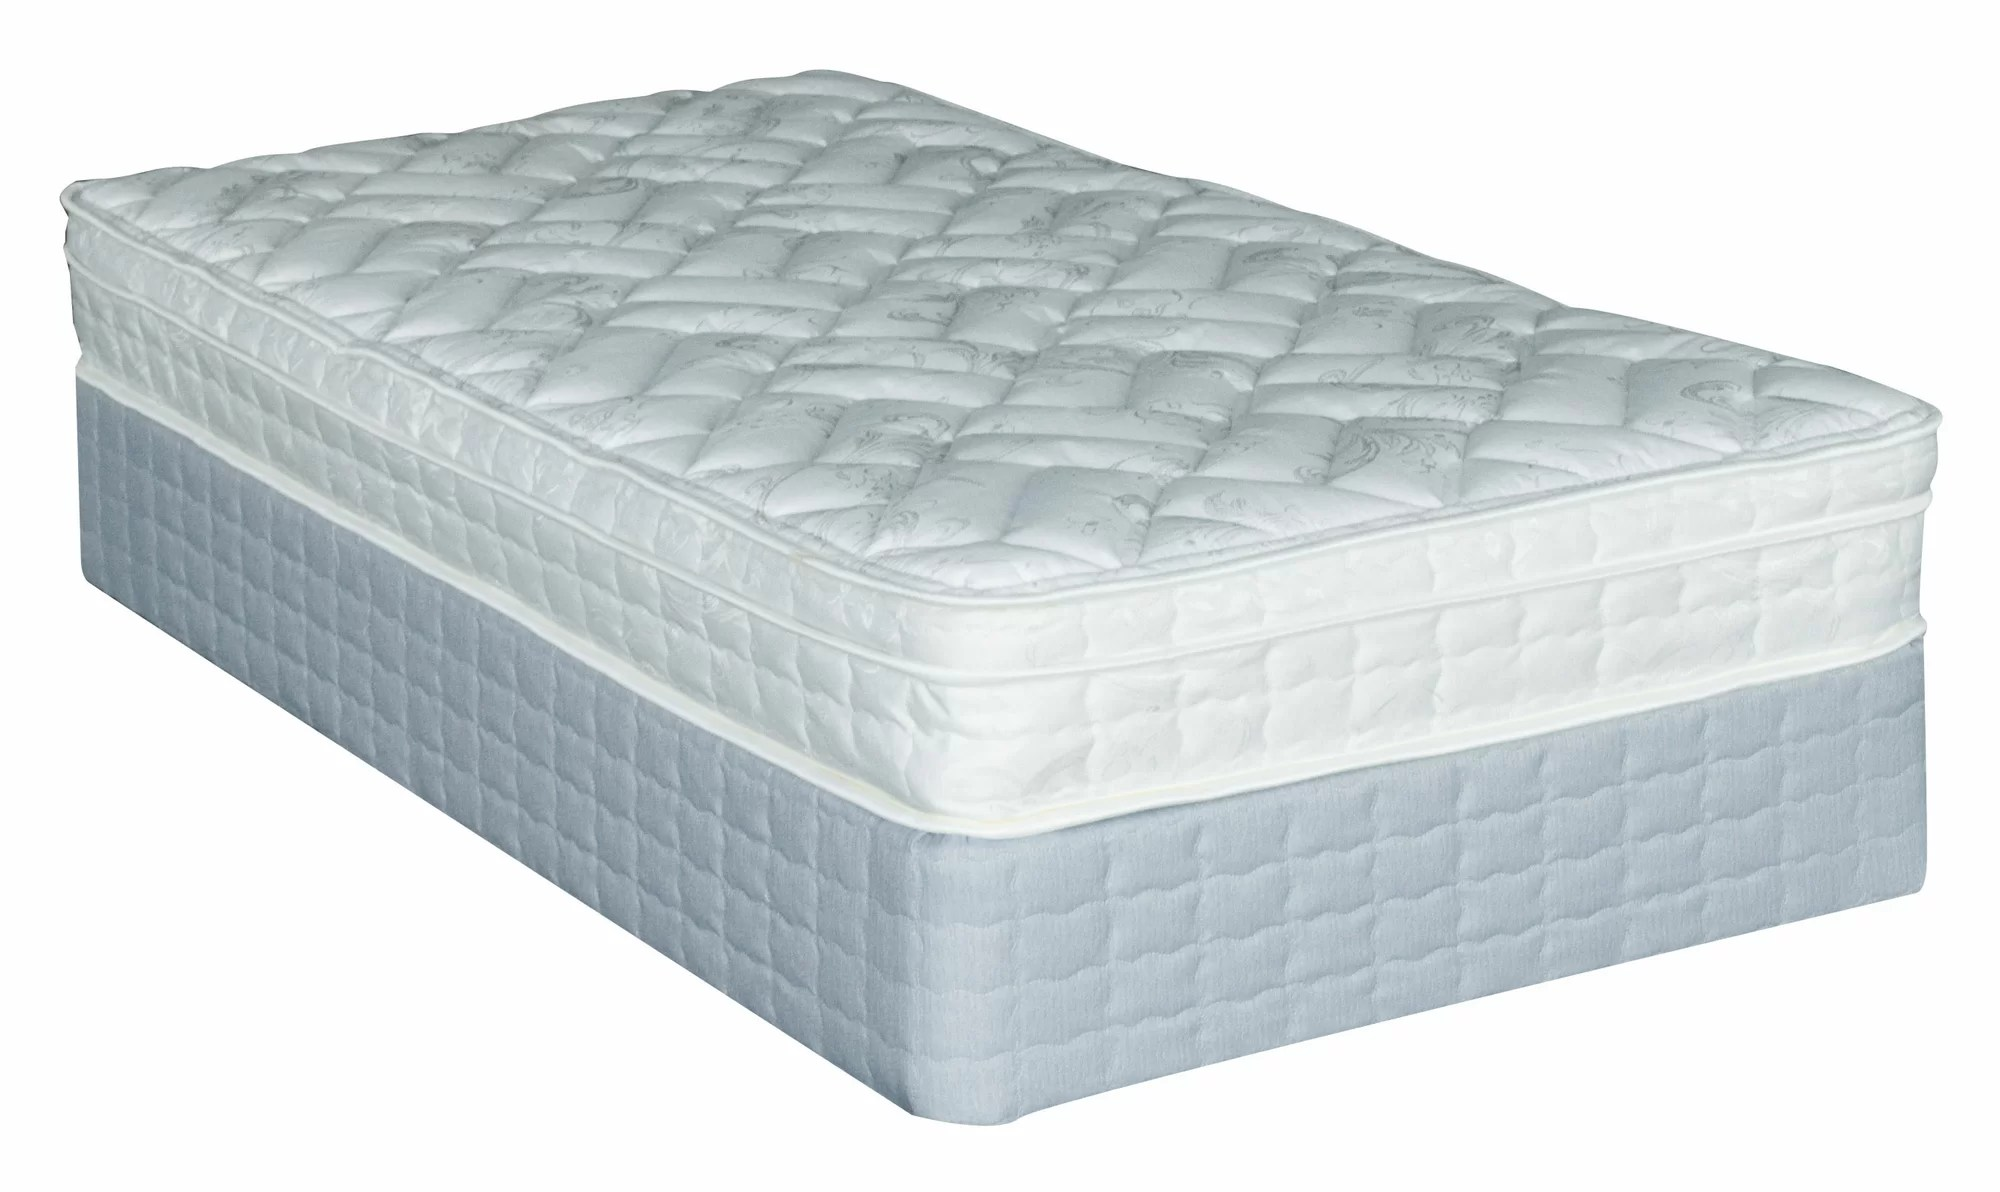 Low Profile Innerspring Mattress Mattress Gallery Rent To Own Iamsl